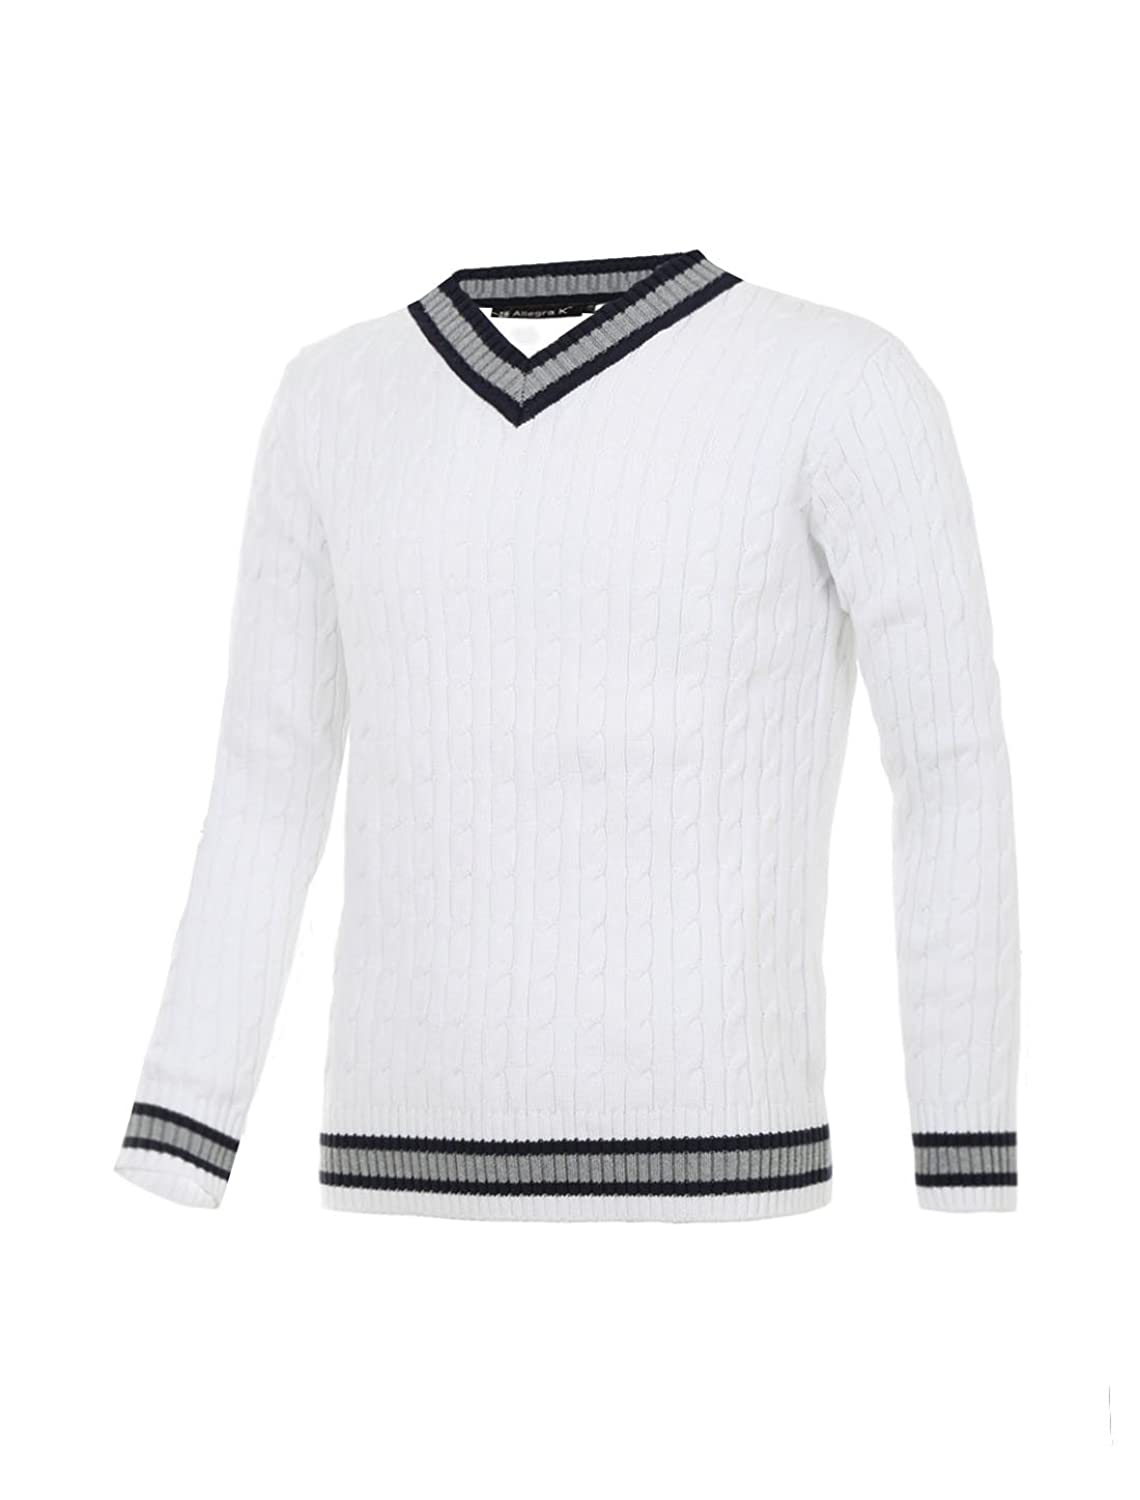 Men's Vintage Sweaters – 1920s to 1960s Retro Jumpers Allegra K Men V Neck Cable Pattern Ribbed Long Sleeves Pullover Knitted Sweater $30.50 AT vintagedancer.com